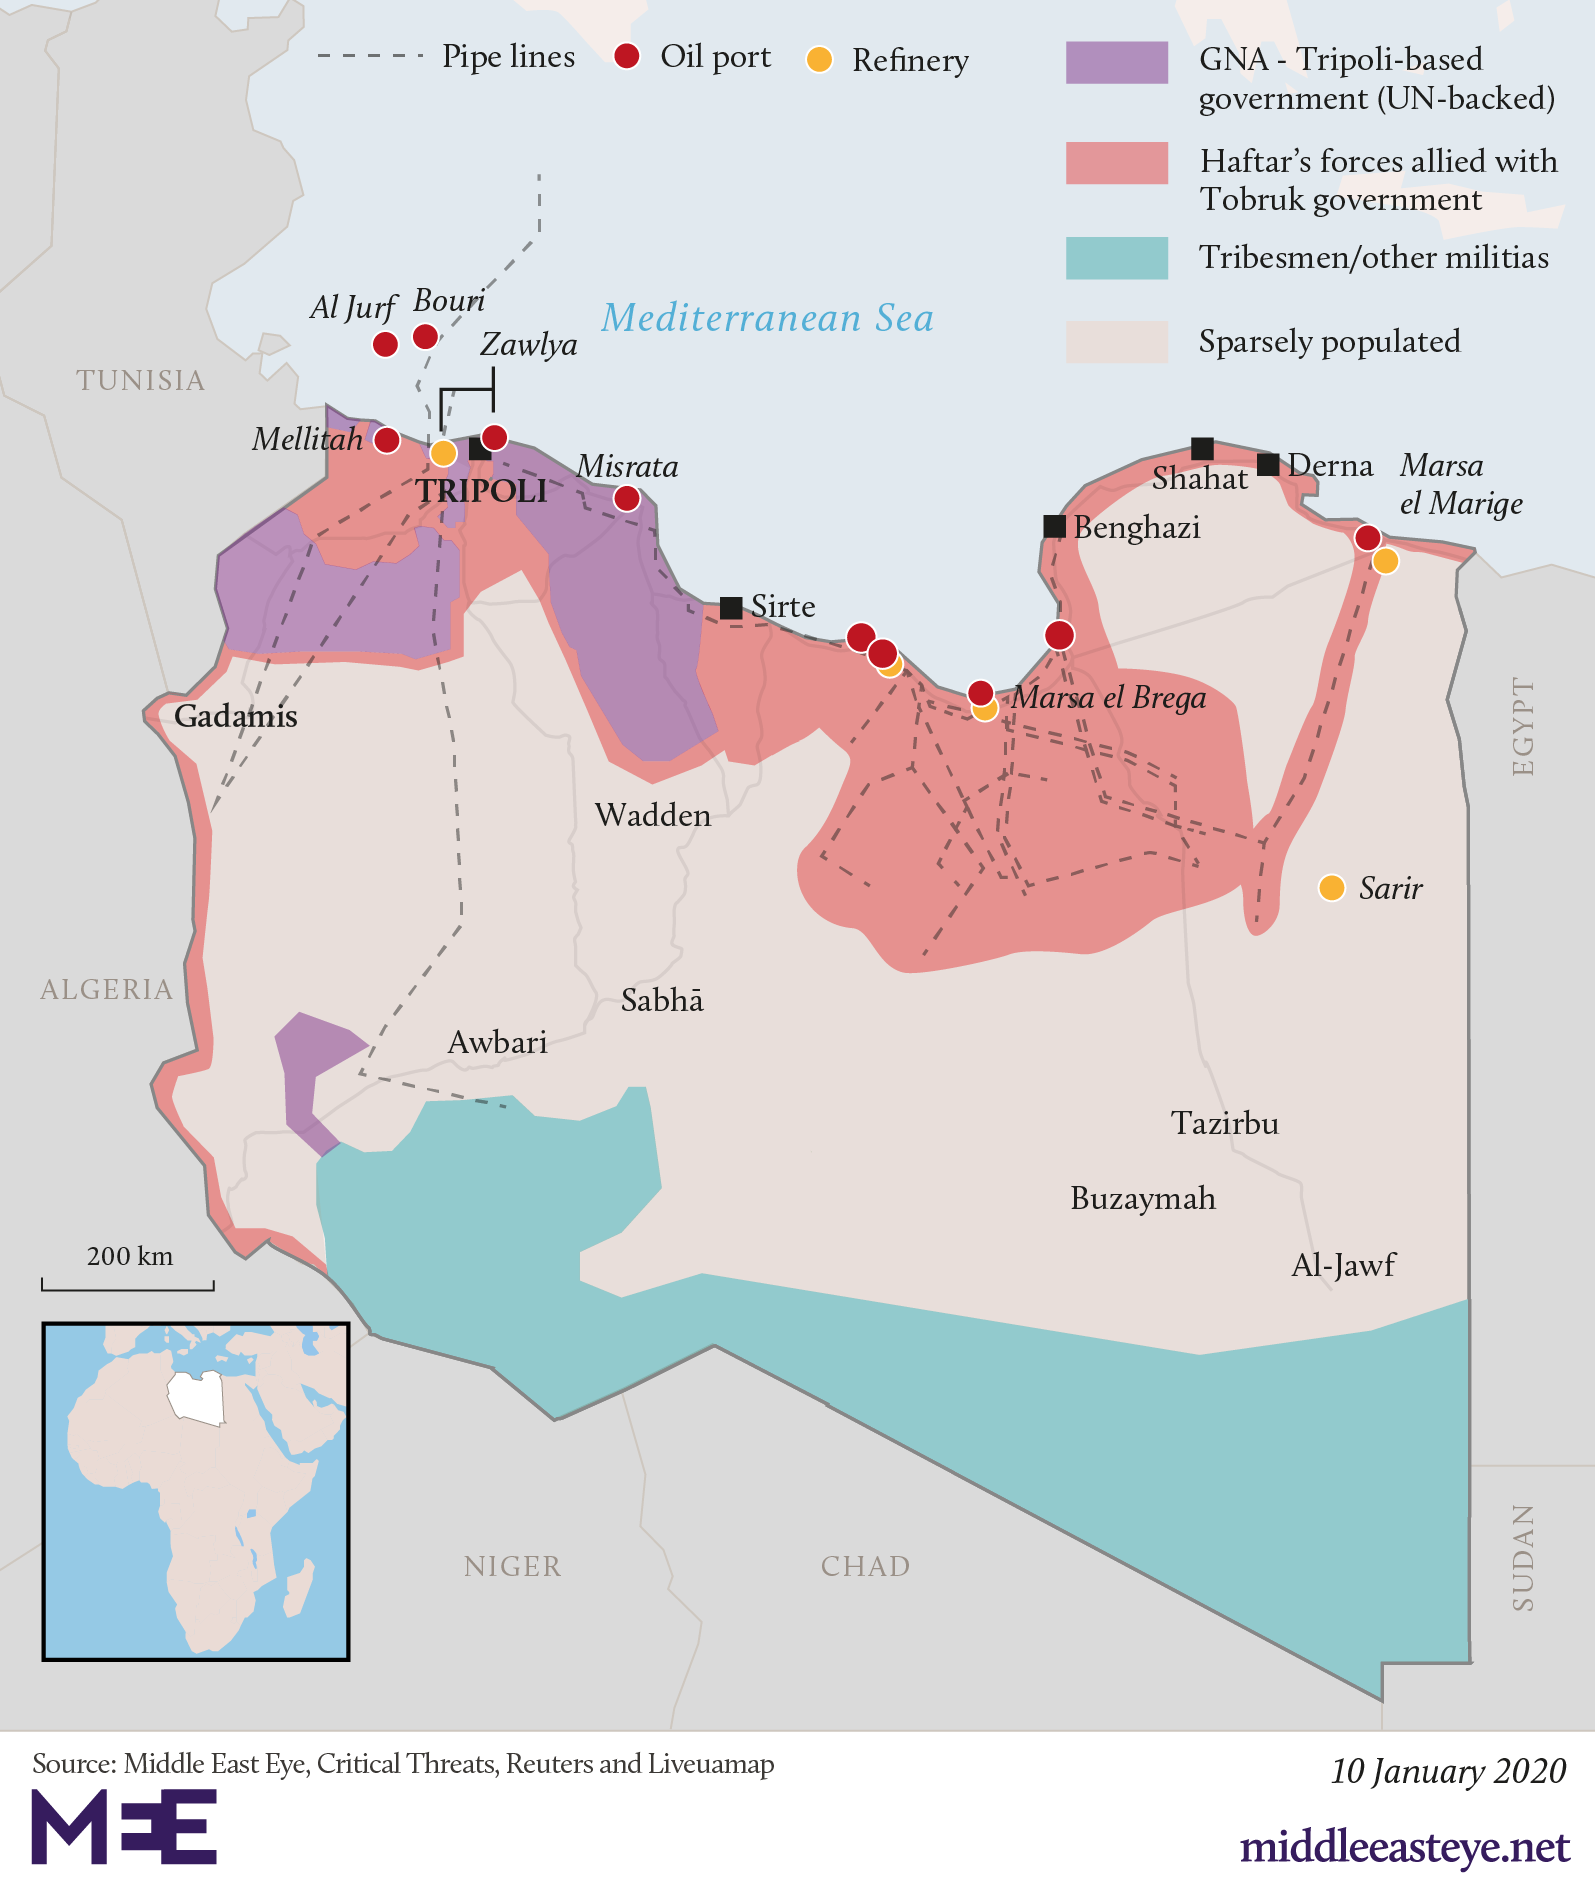 Libya: Who controls what?